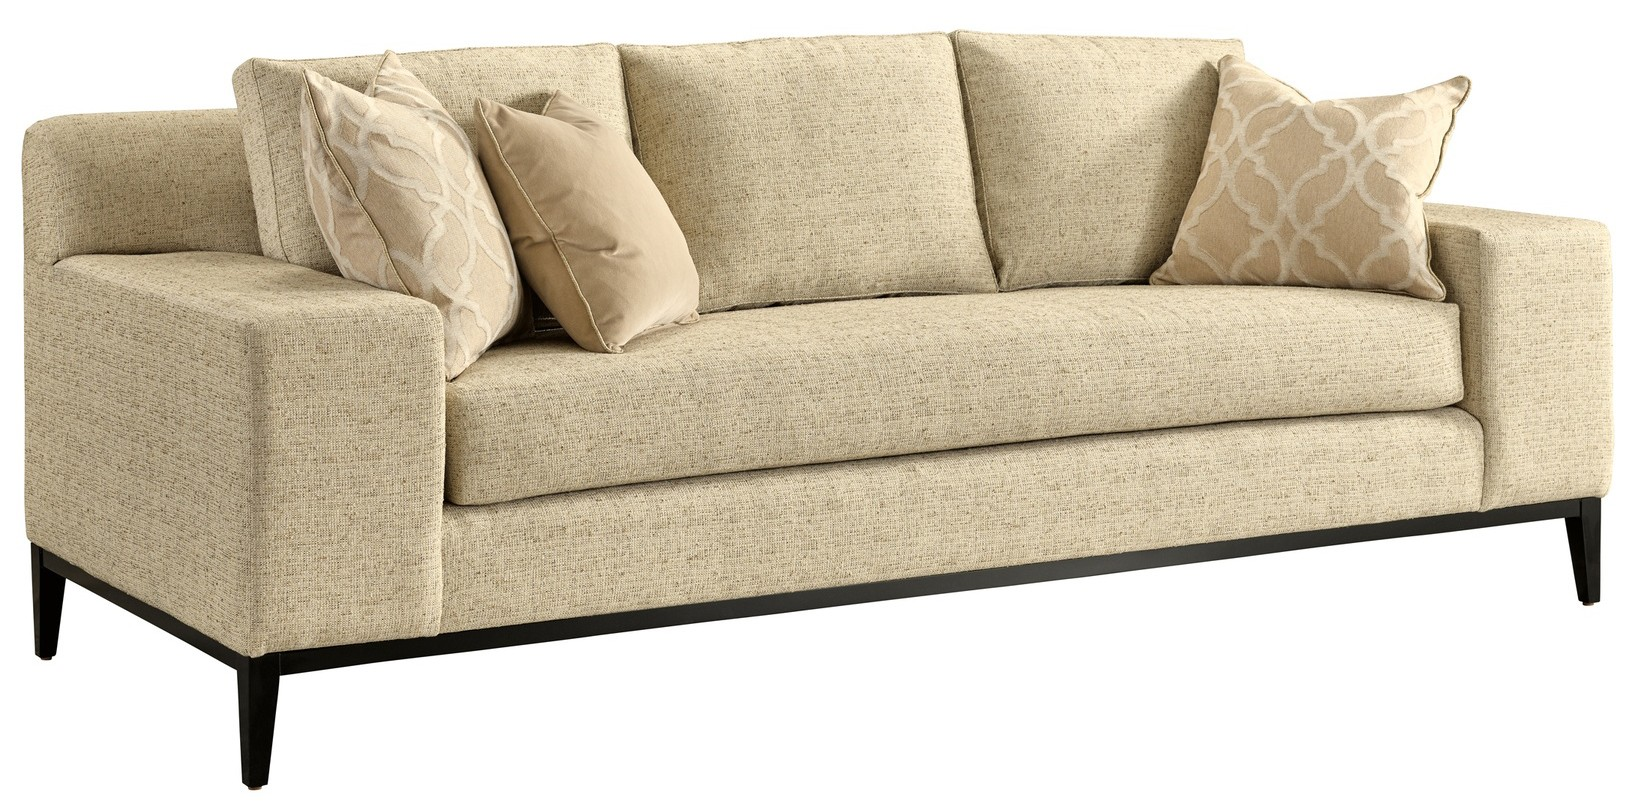 Sofa couch loveseat fun and elegant modern style sofa